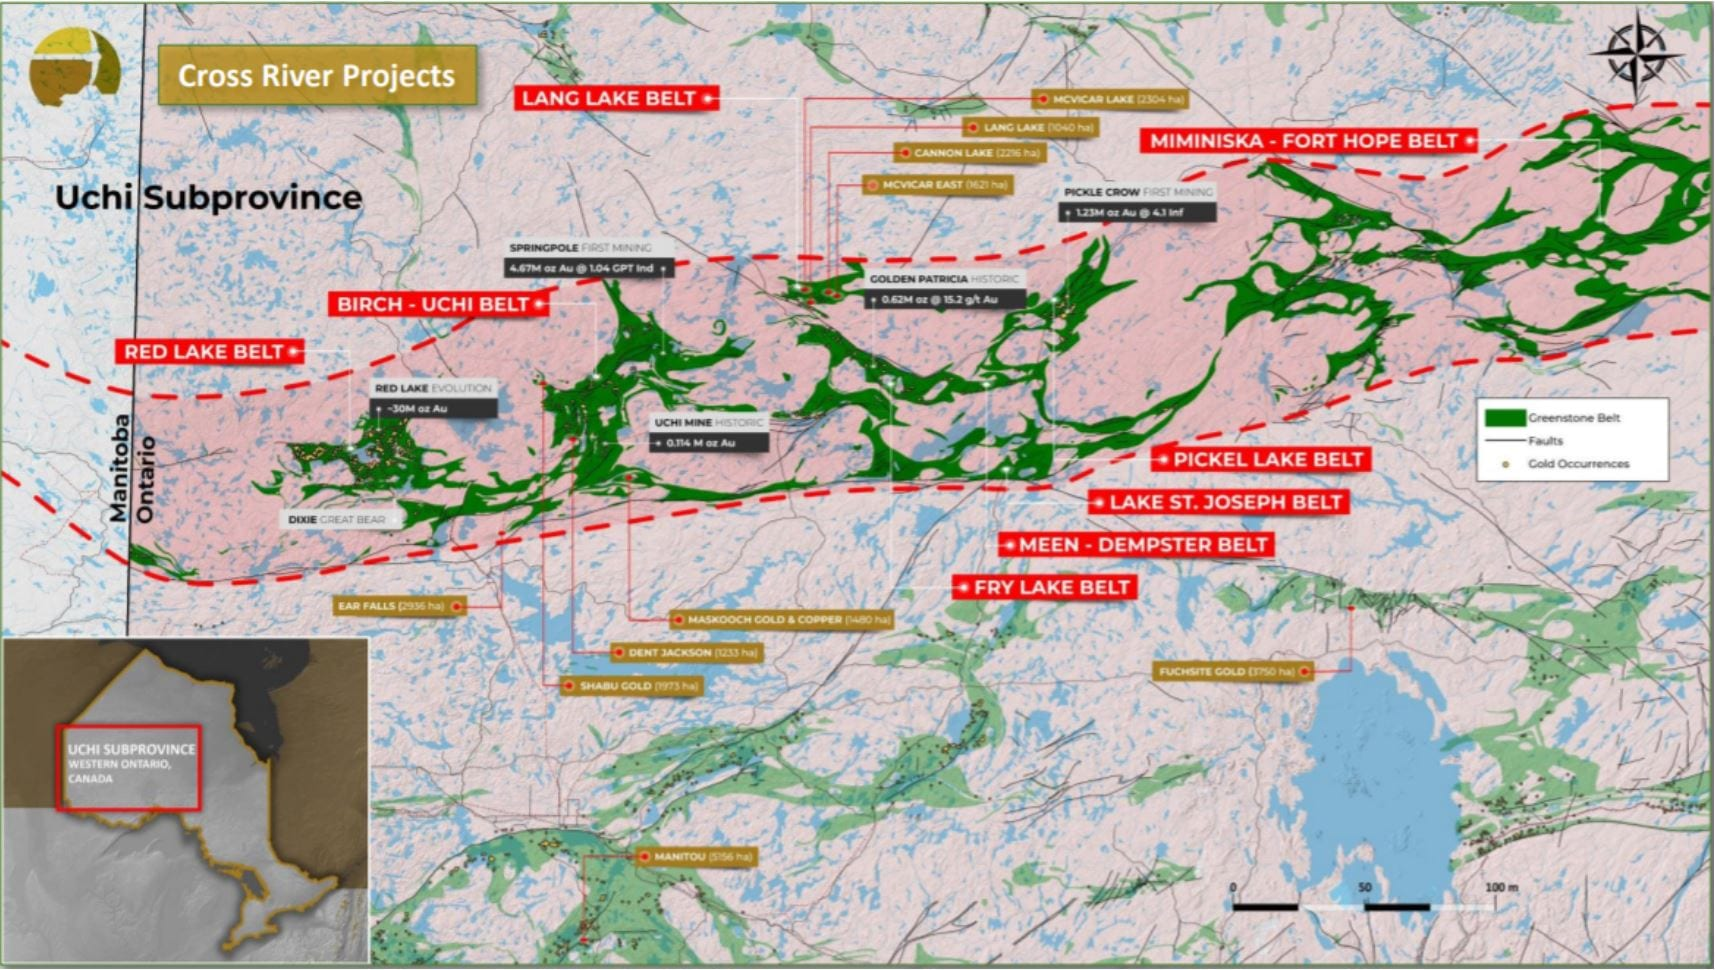 map of cross river ventures' uchi belt projects